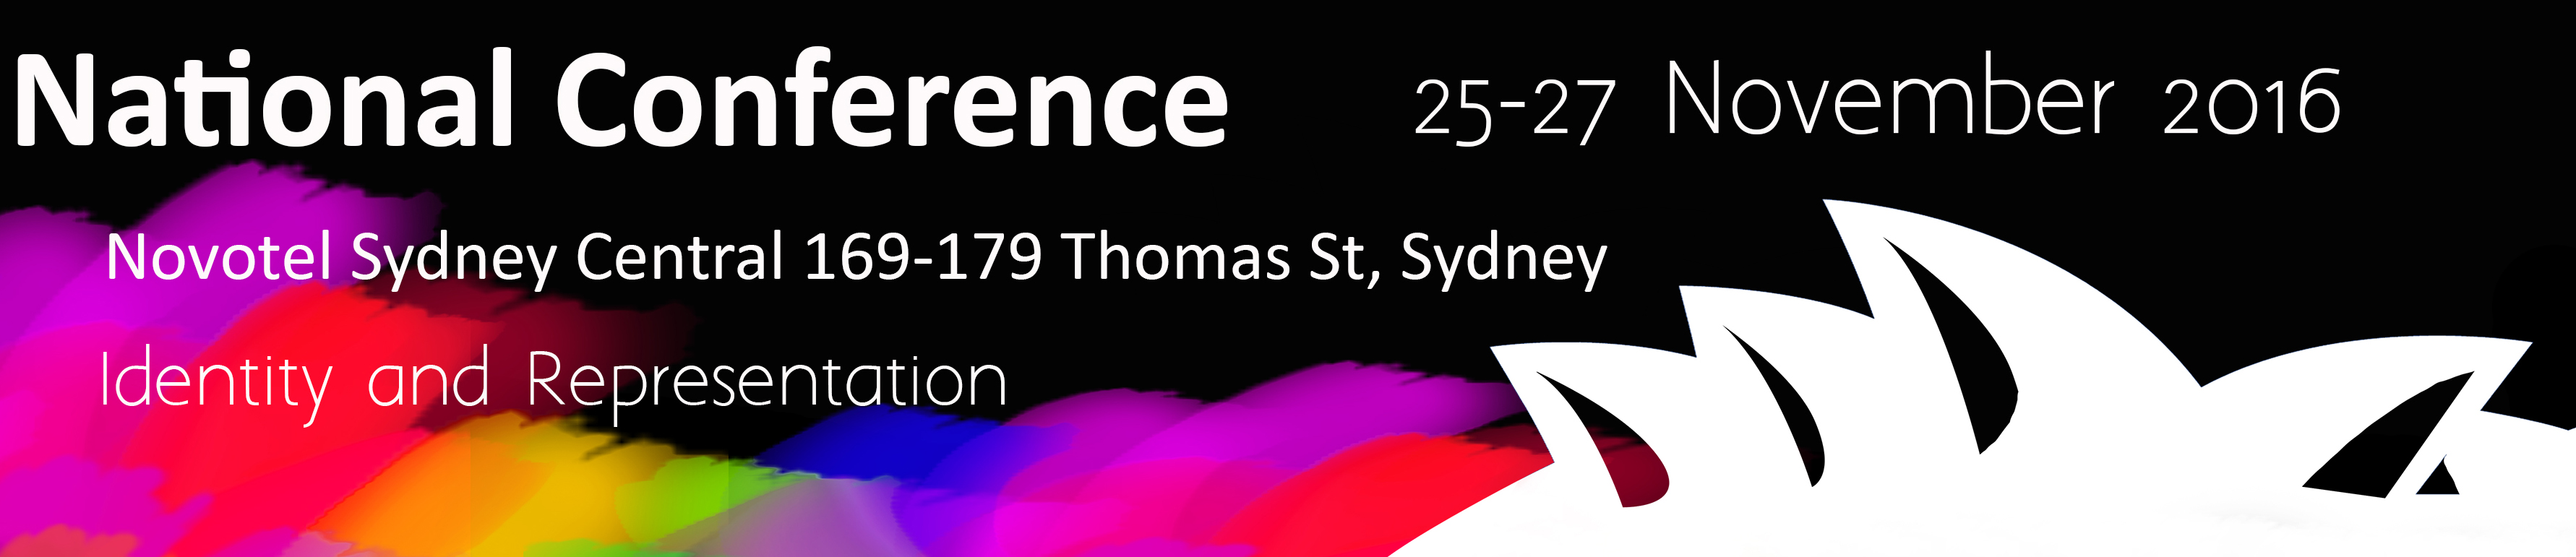 eMail Signature Conference 2016 Sydney FINAL